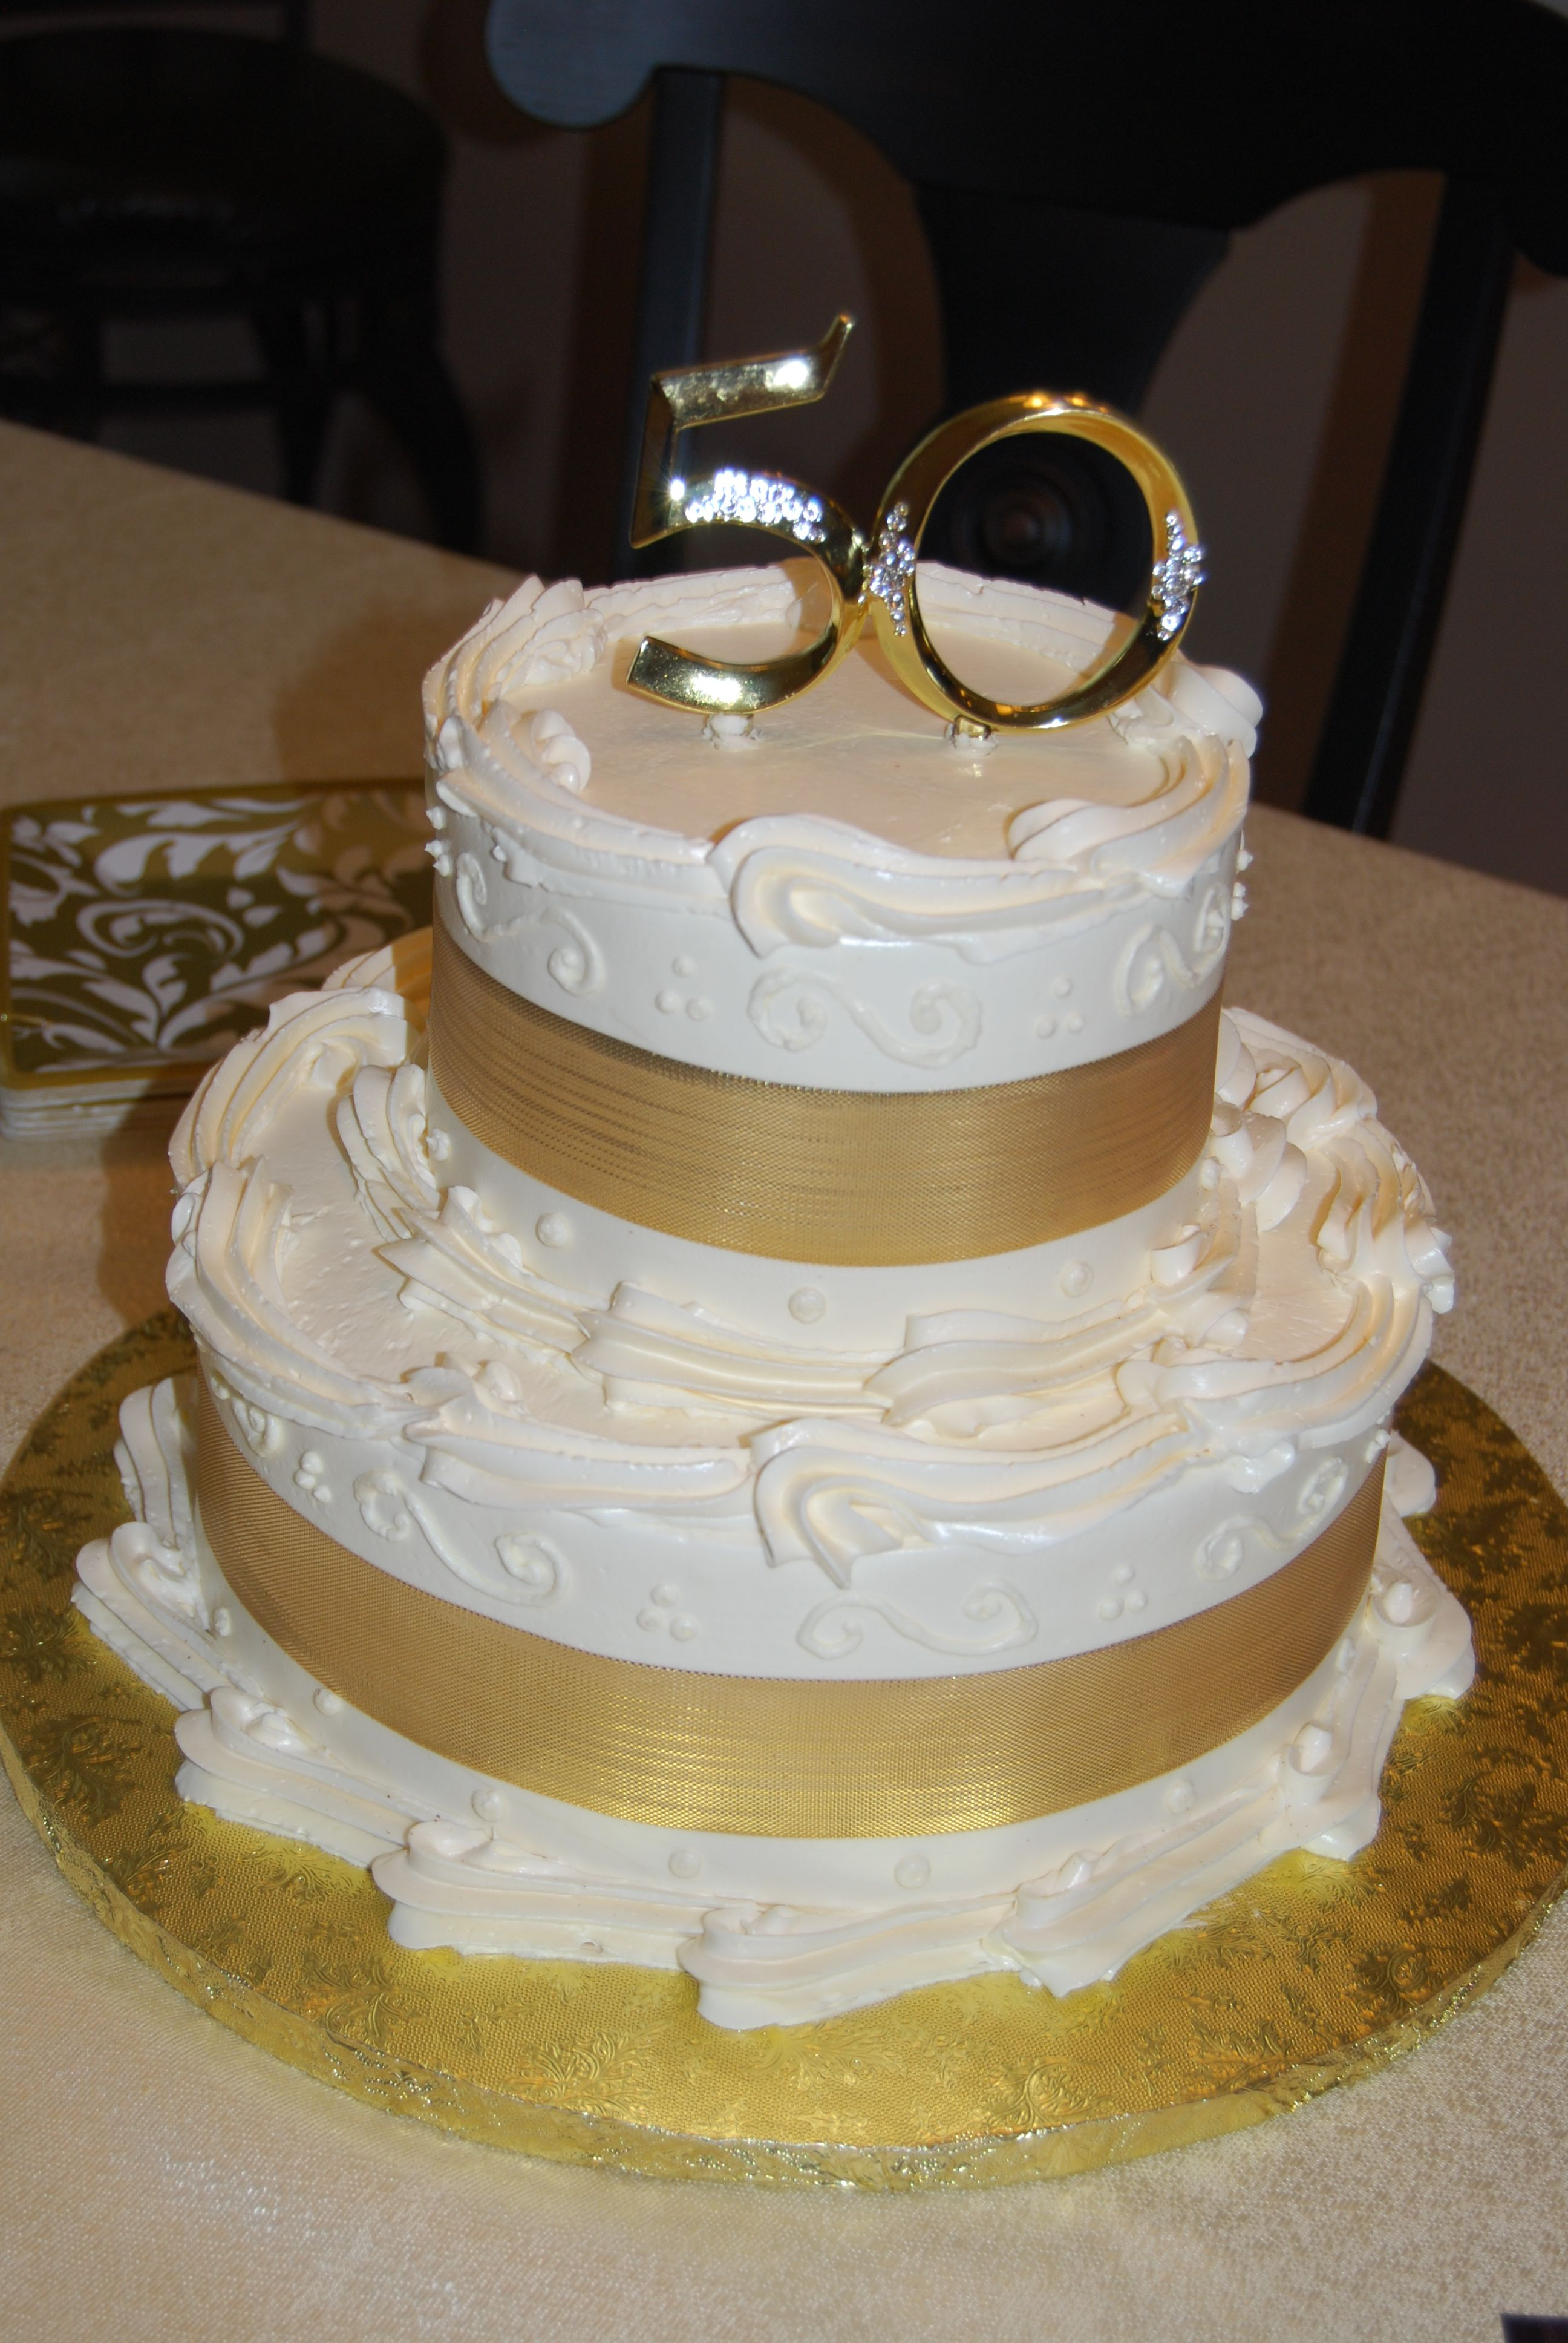 Newtown Square (With images) 50th anniversary cakes